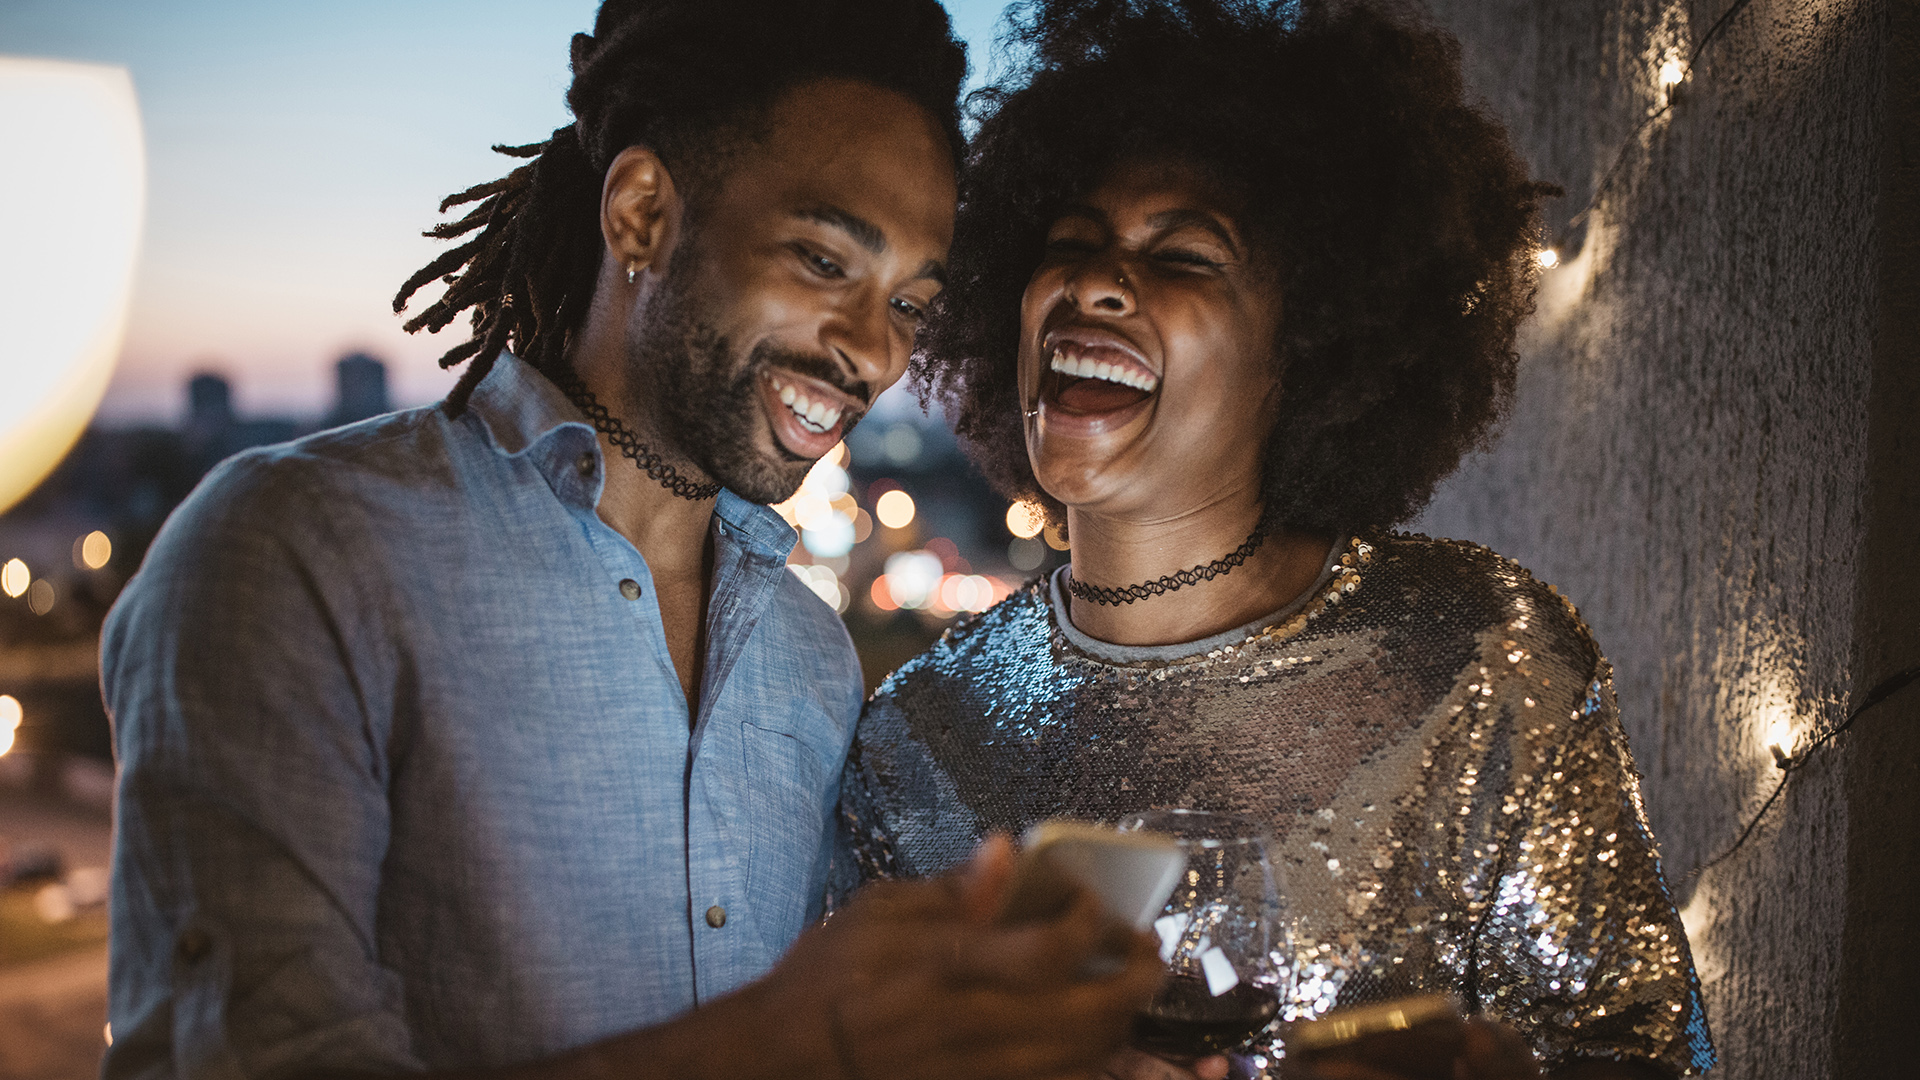 Man and woman laughing outside, looking at phone